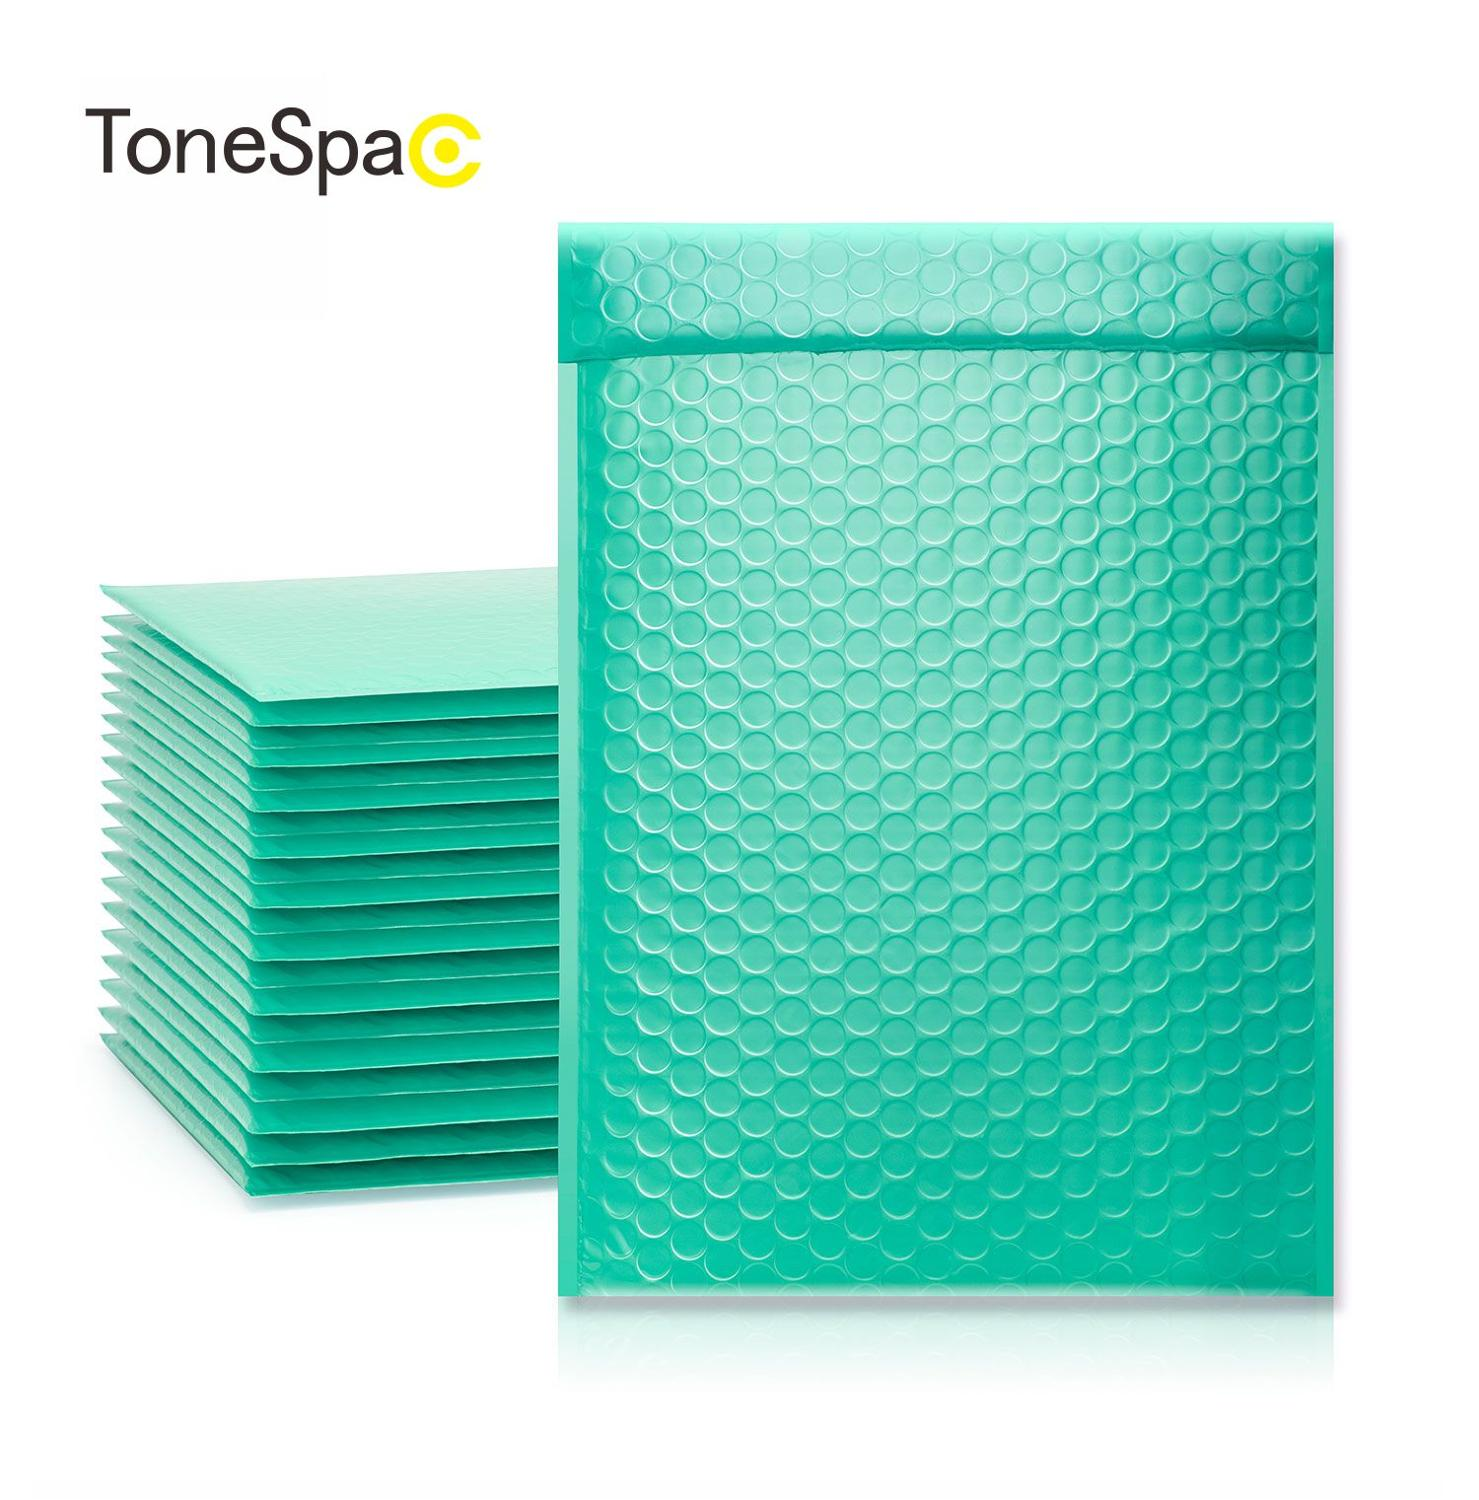 TONESPAC 287*380mm 25pcs Poly <font><b>Bubble</b></font> <font><b>Padded</b></font> Wrap <font><b>Envelope</b></font> <font><b>Mailer</b></font> Packaging Shipping Self Seal Waterproof Bags Teal image